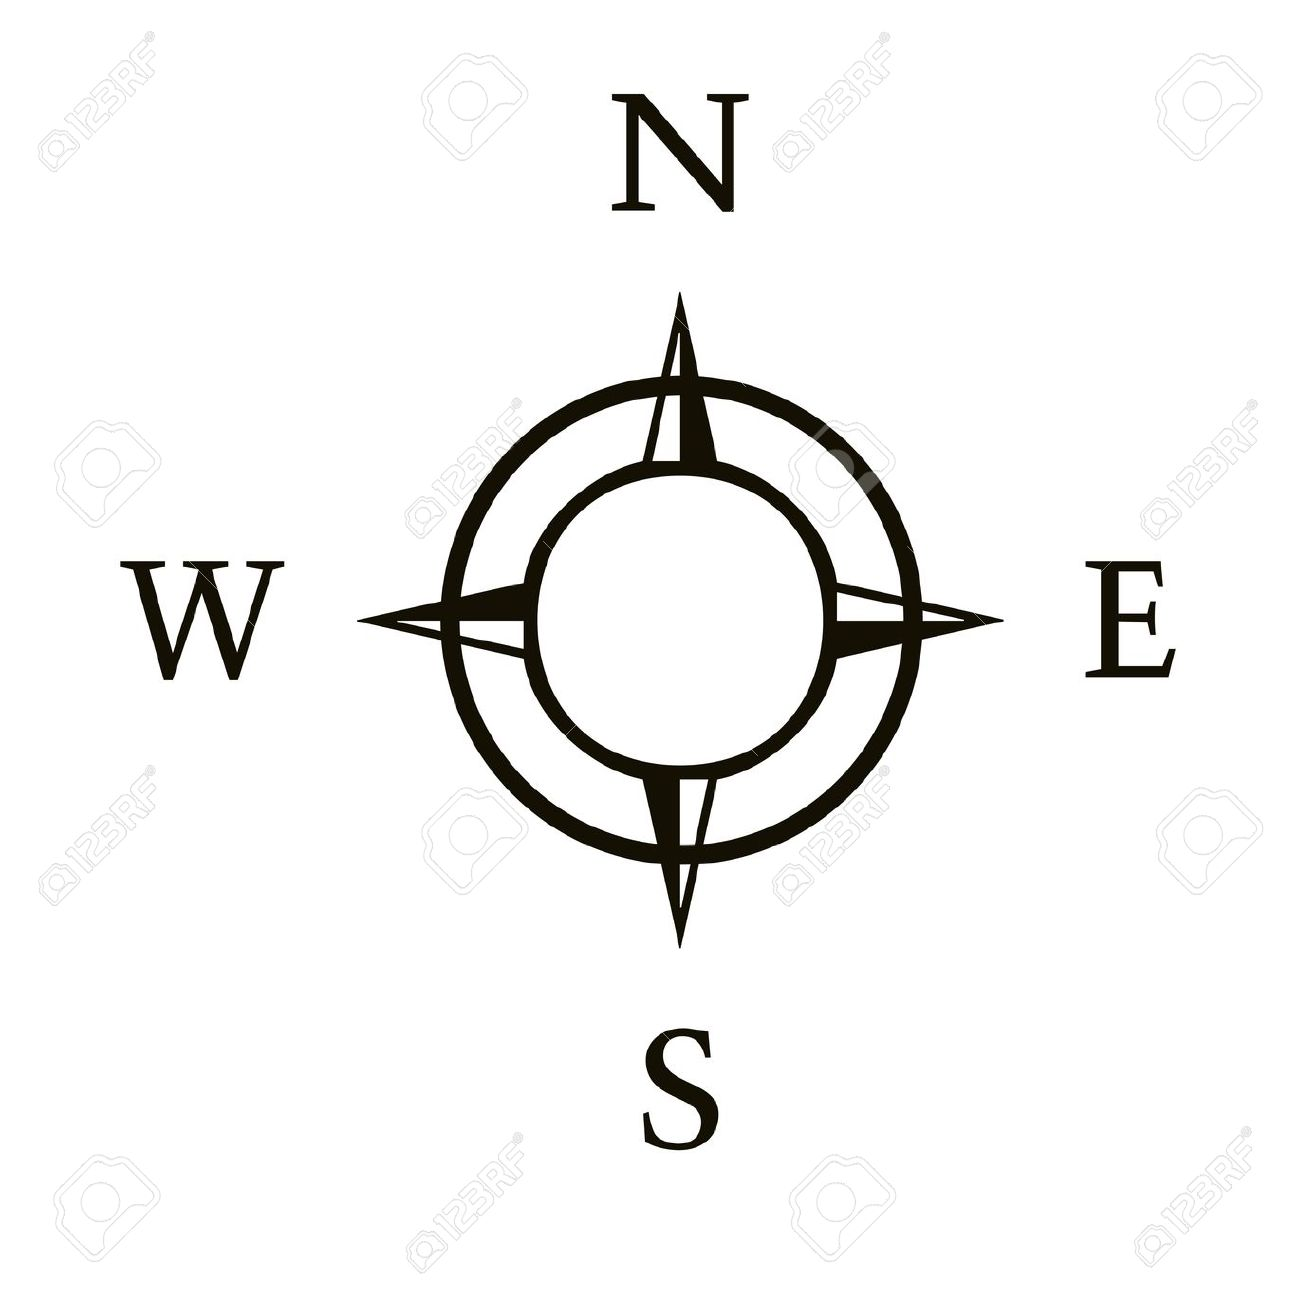 Compass Illustration With North South East West Stock Photo.